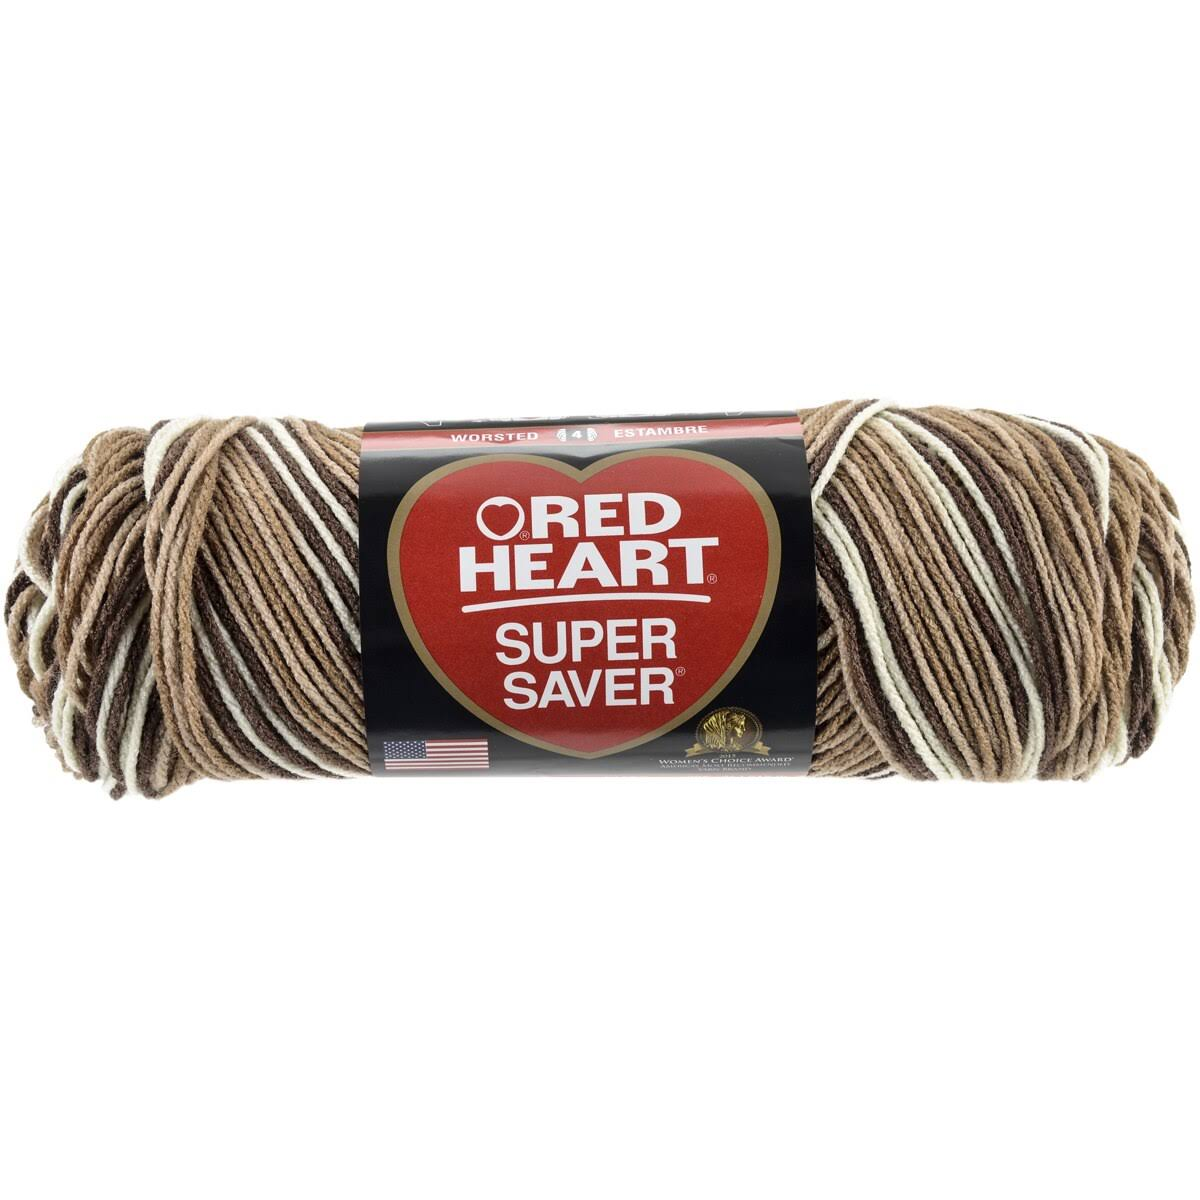 Red Heart Super Saver Yarn - #0992 Shaded Brown, 236yd